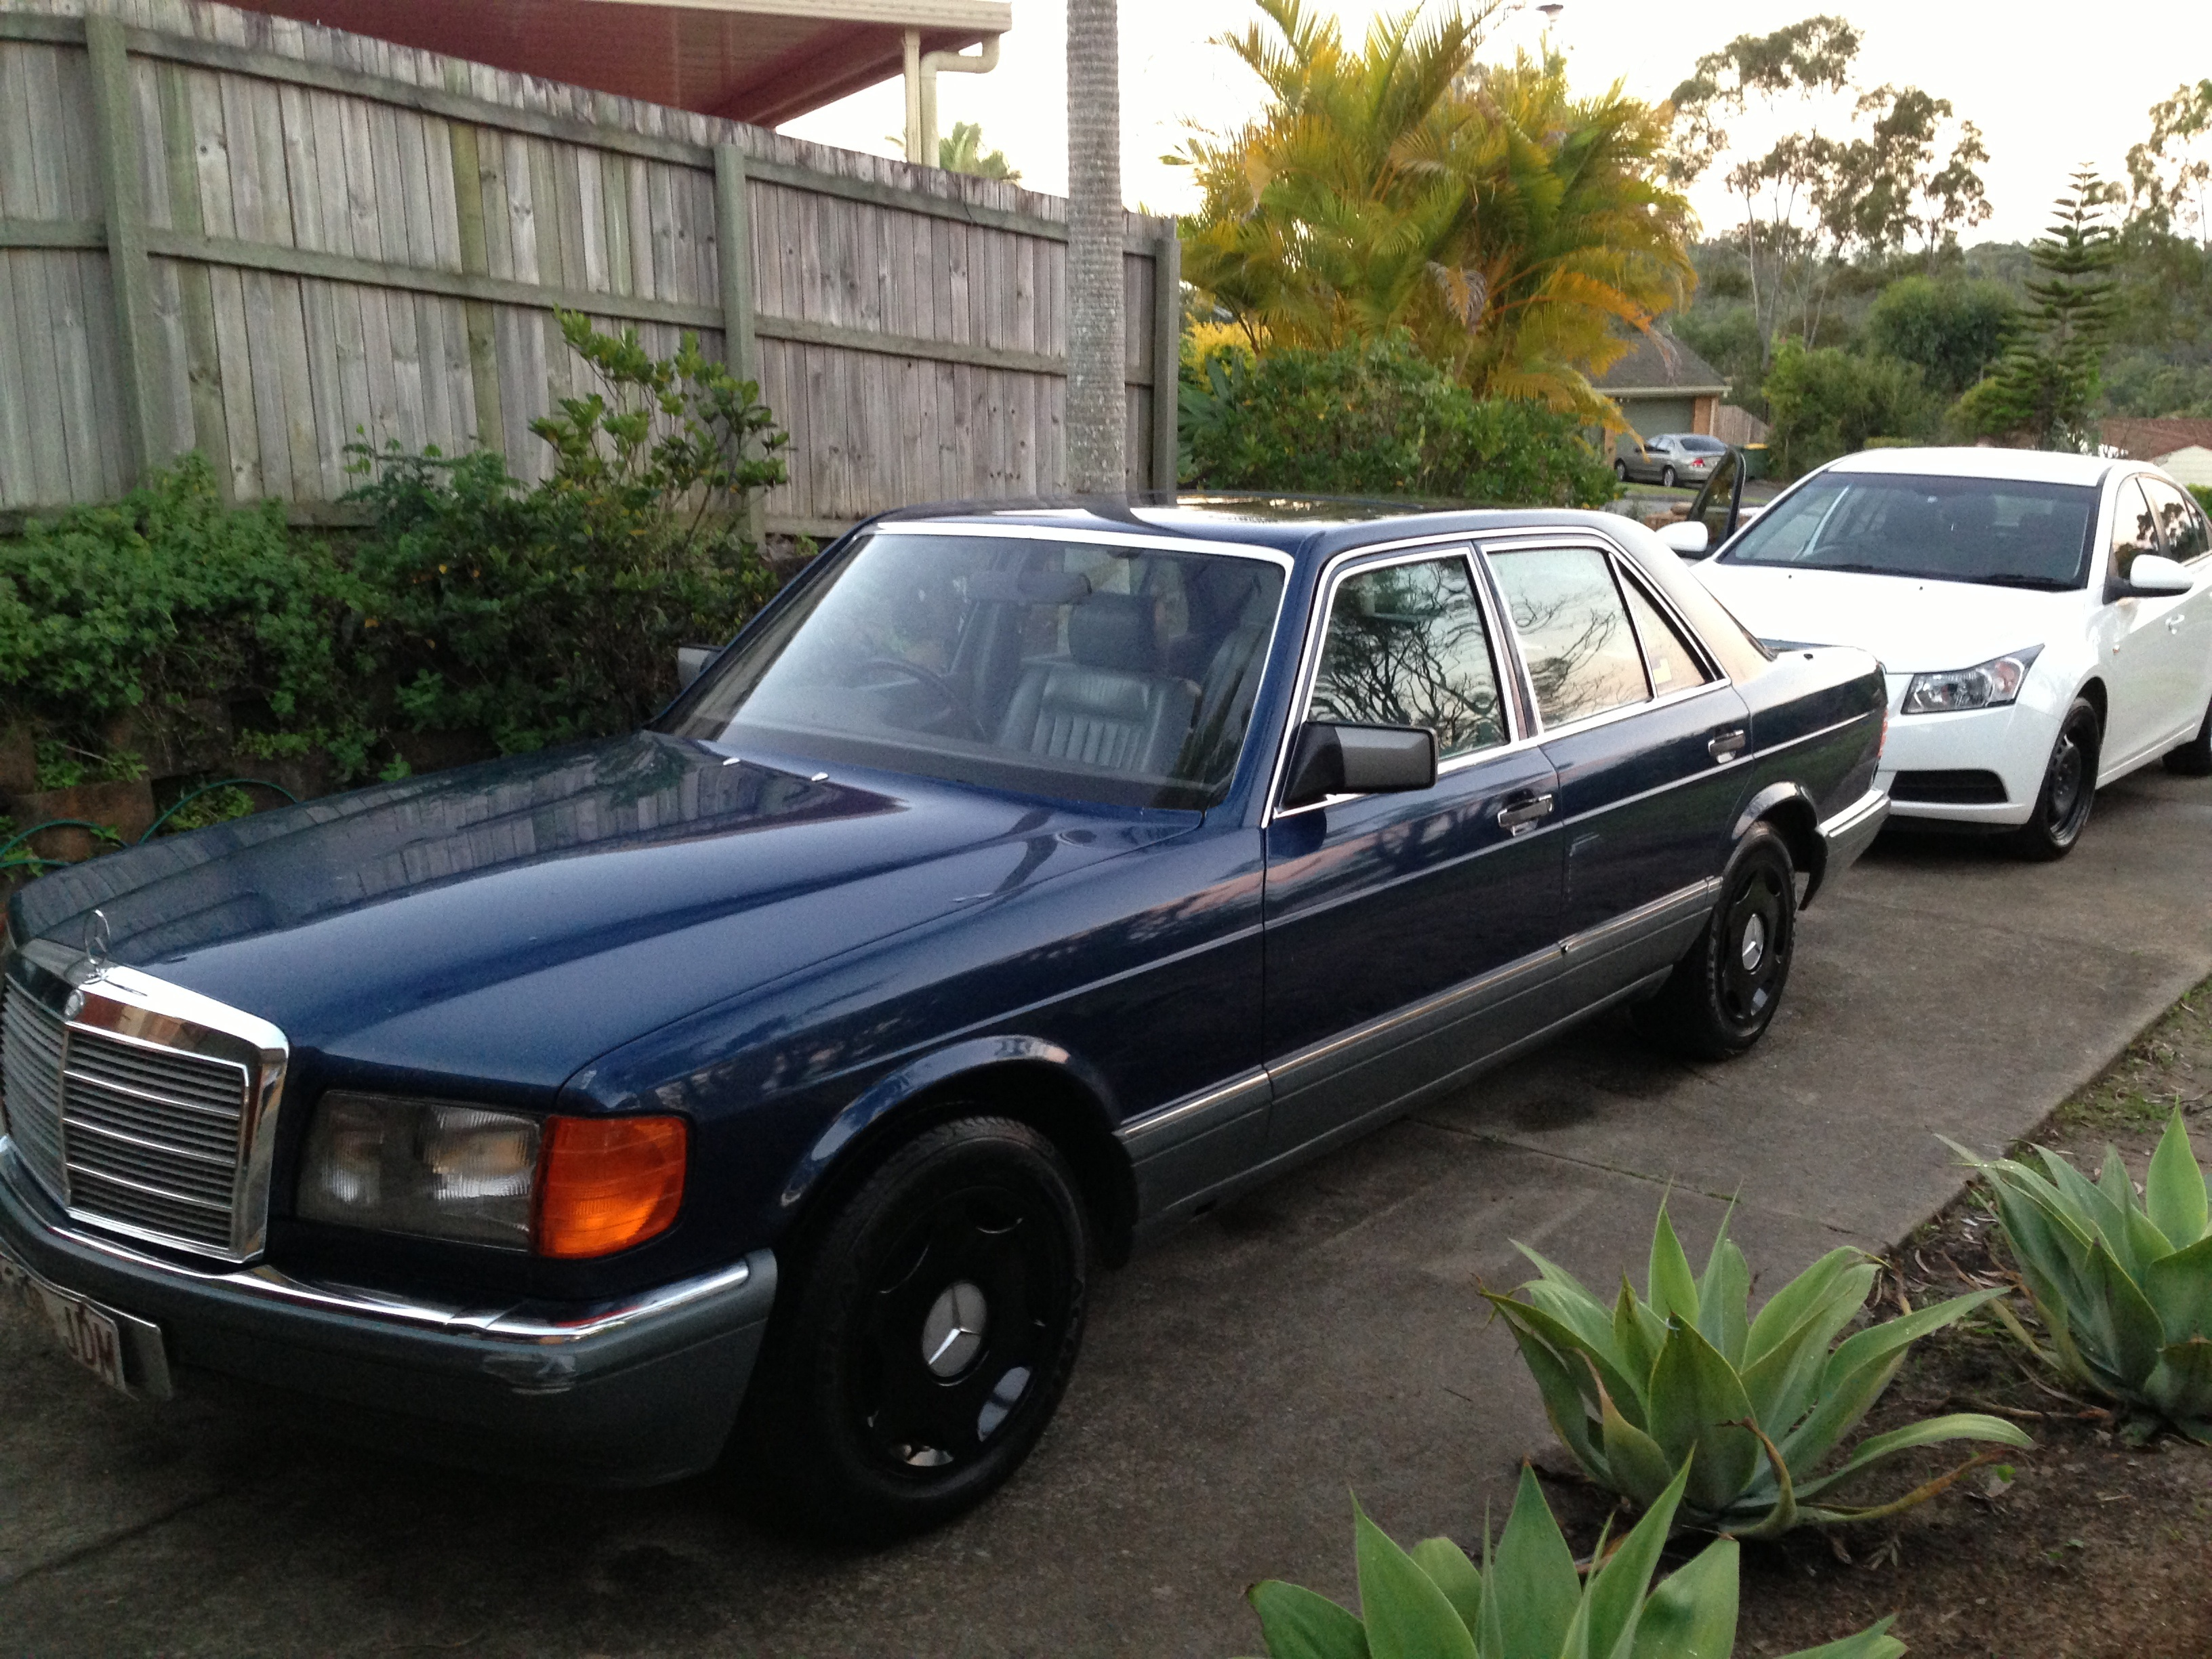 1988 benz 300se se w126 carsales qld gold coast 2252380 for 1988 mercedes benz 300se